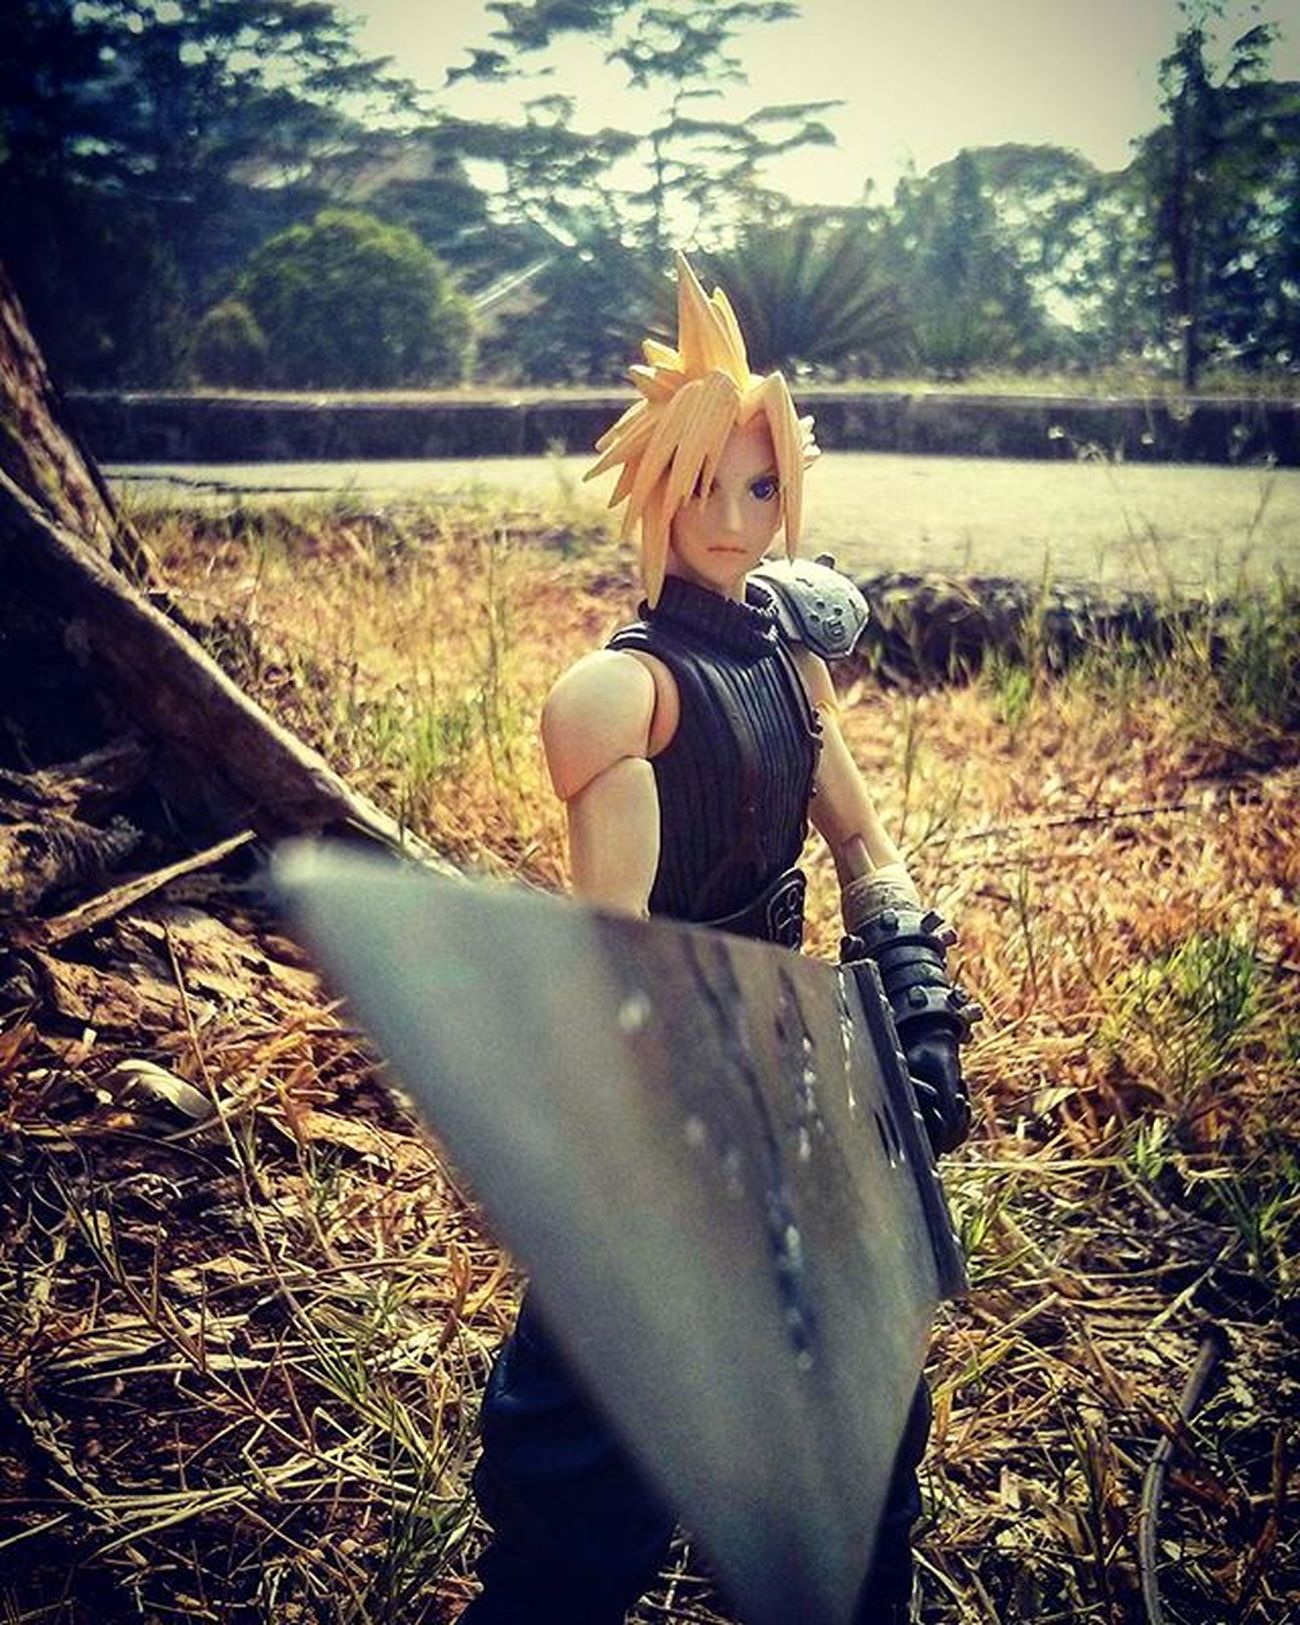 Stay where you belong; in my memories! Cloudstrife FinalfantasyVII Finalfantasy7 Ff7 Playarts Bustersword